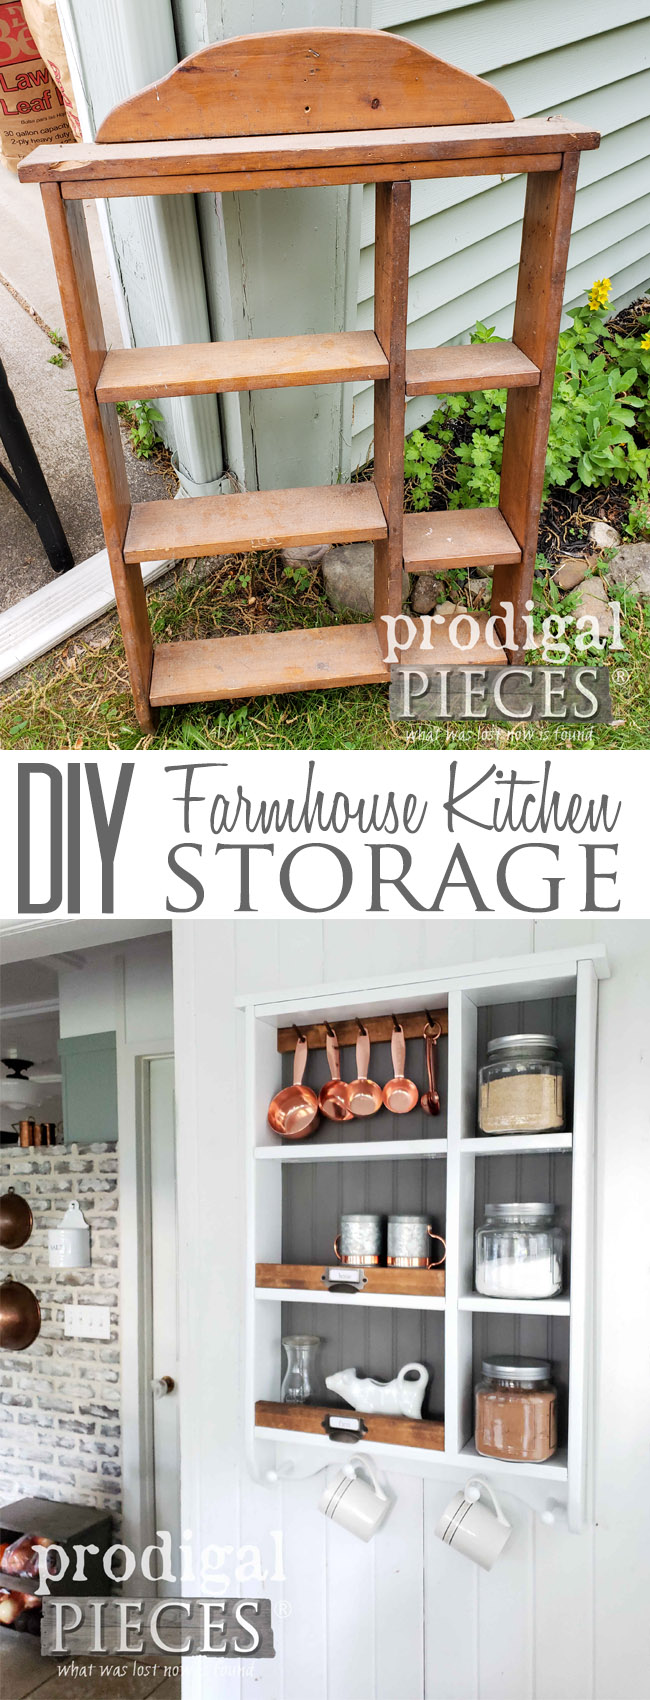 Wow! This tired looking shelf was transformed into fantastic farmhouse kitchen storage with a little elbow grease. See the DIY details at Prodigal Pieces | prodigalpieces.com #prodigalpieces #homedecor #farmhouse #diy #shopping